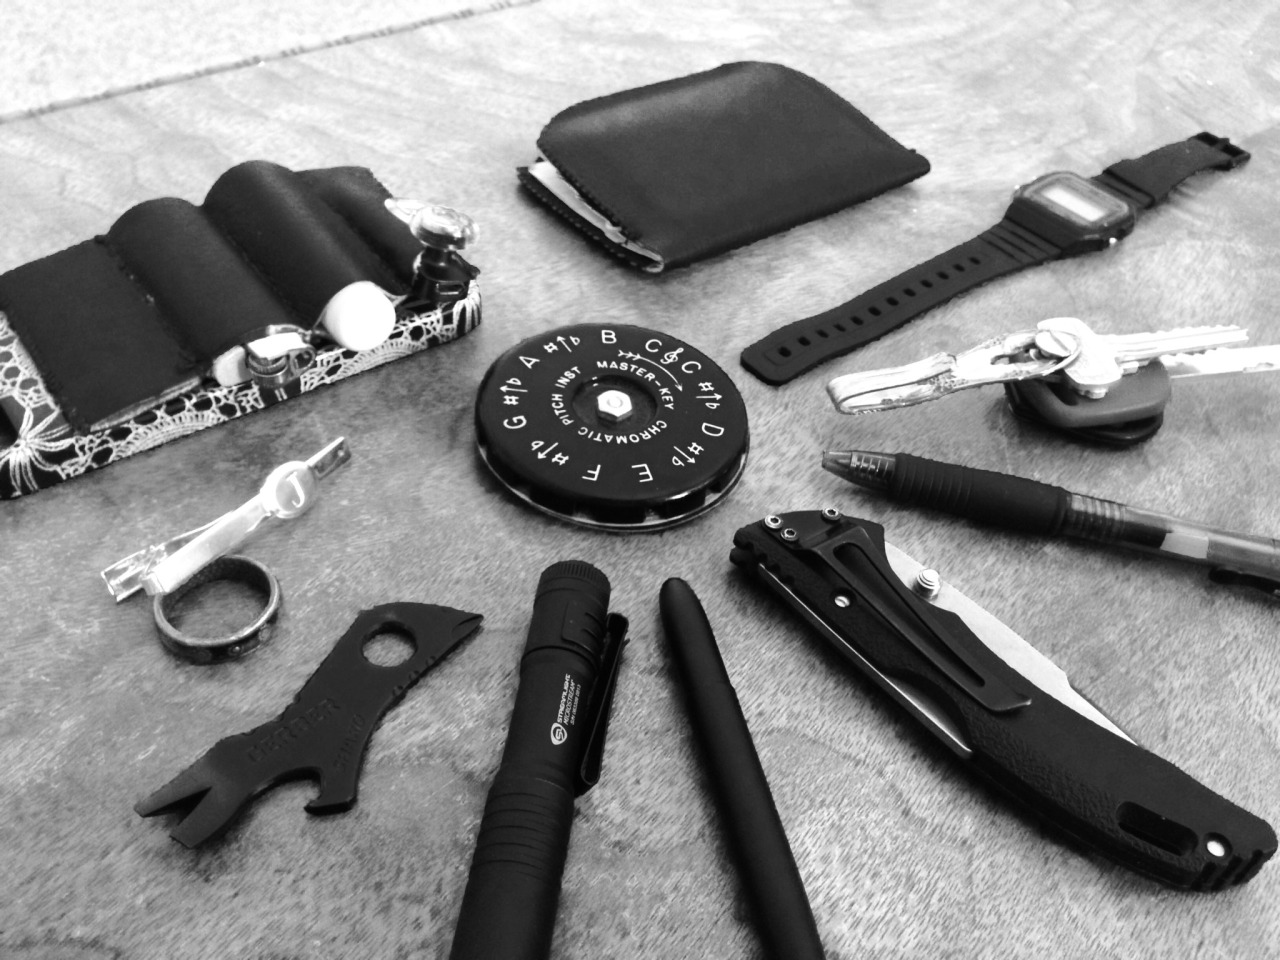 everydaycarry: Master-Key Chromatic pitch pipe Self-made pocket organizer with lighter, lip balm, Bluetooth earpiece Cheapo iPhone 5 case Tie Clip Wedding band Gerber Shard Read More http://www.dailycarry.co